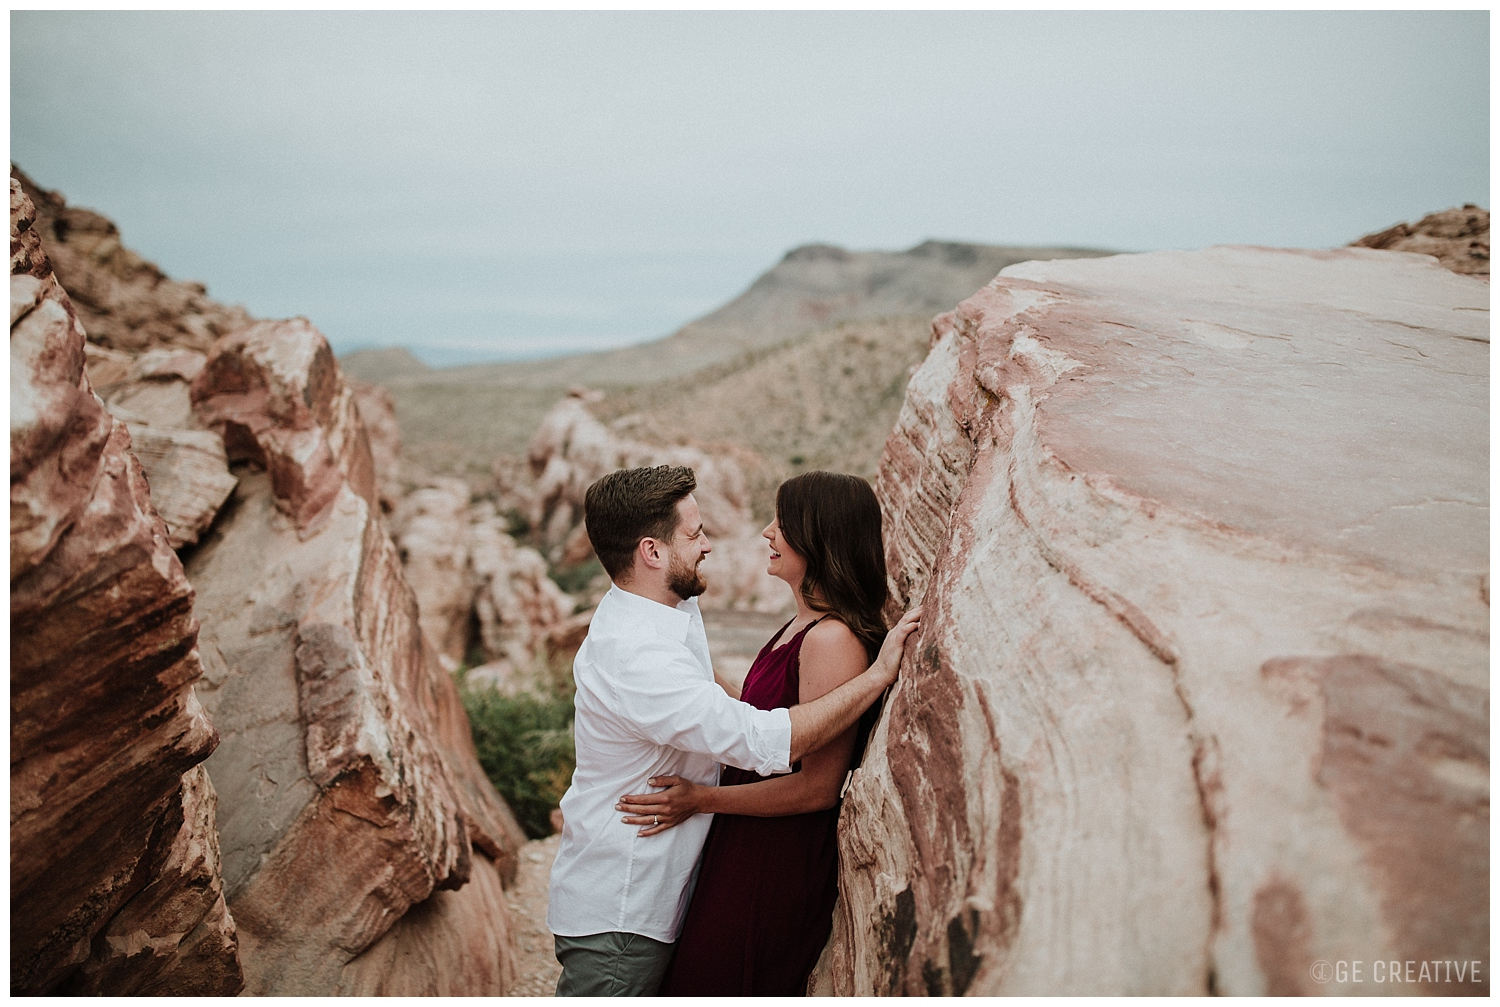 BRI + CHRIS - Red Rock Canyon Engagement Photos | NV